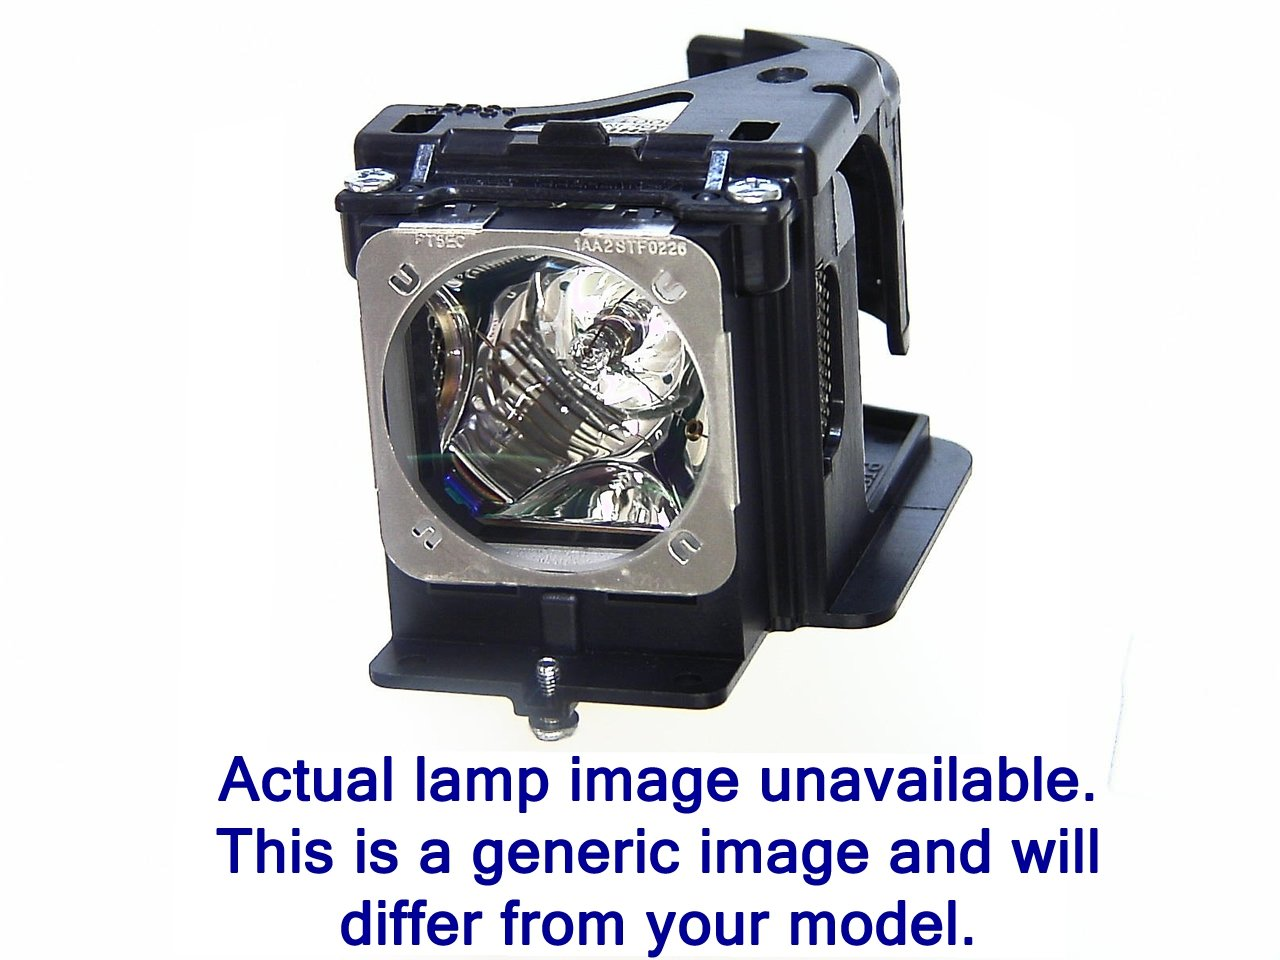 Digital Projection 111-896 400W projector lamp   B00CWCOMY4